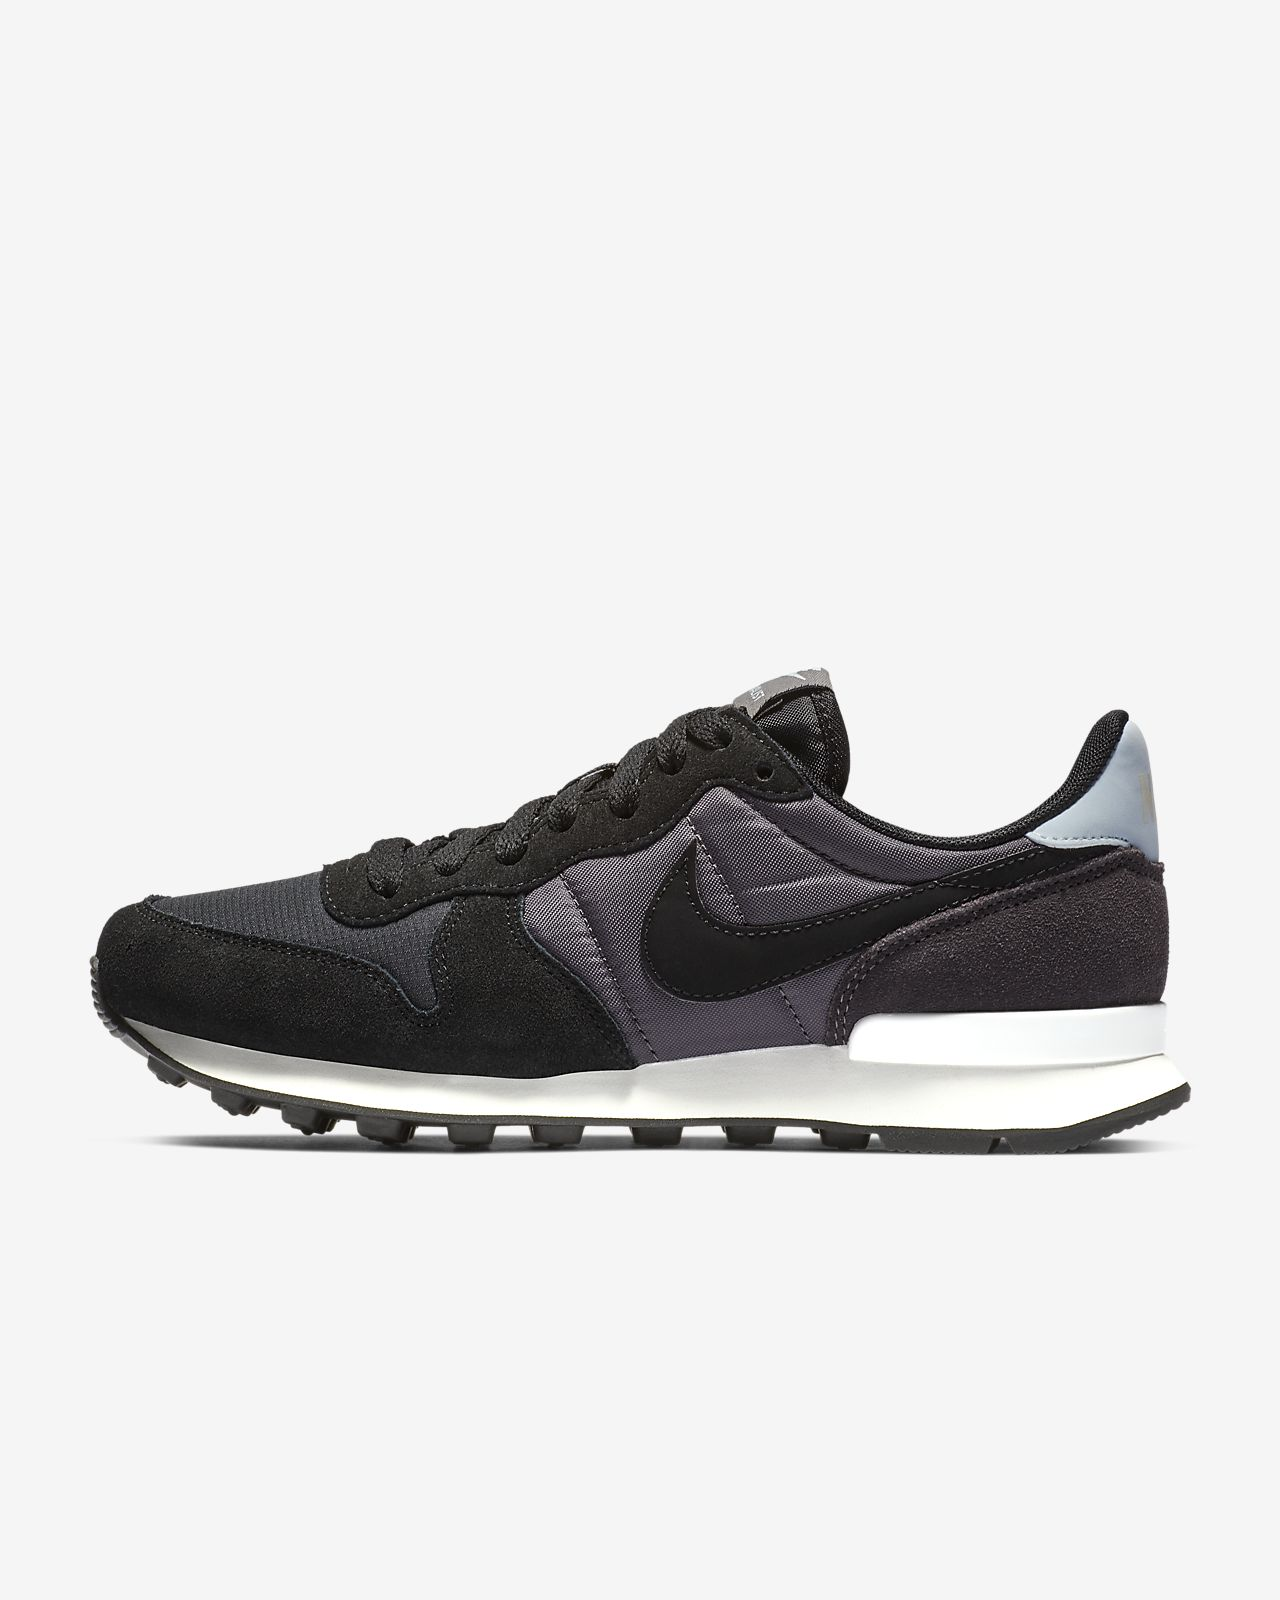 83f1217d1 Nike Internationalist Women s Shoe. Nike.com AU